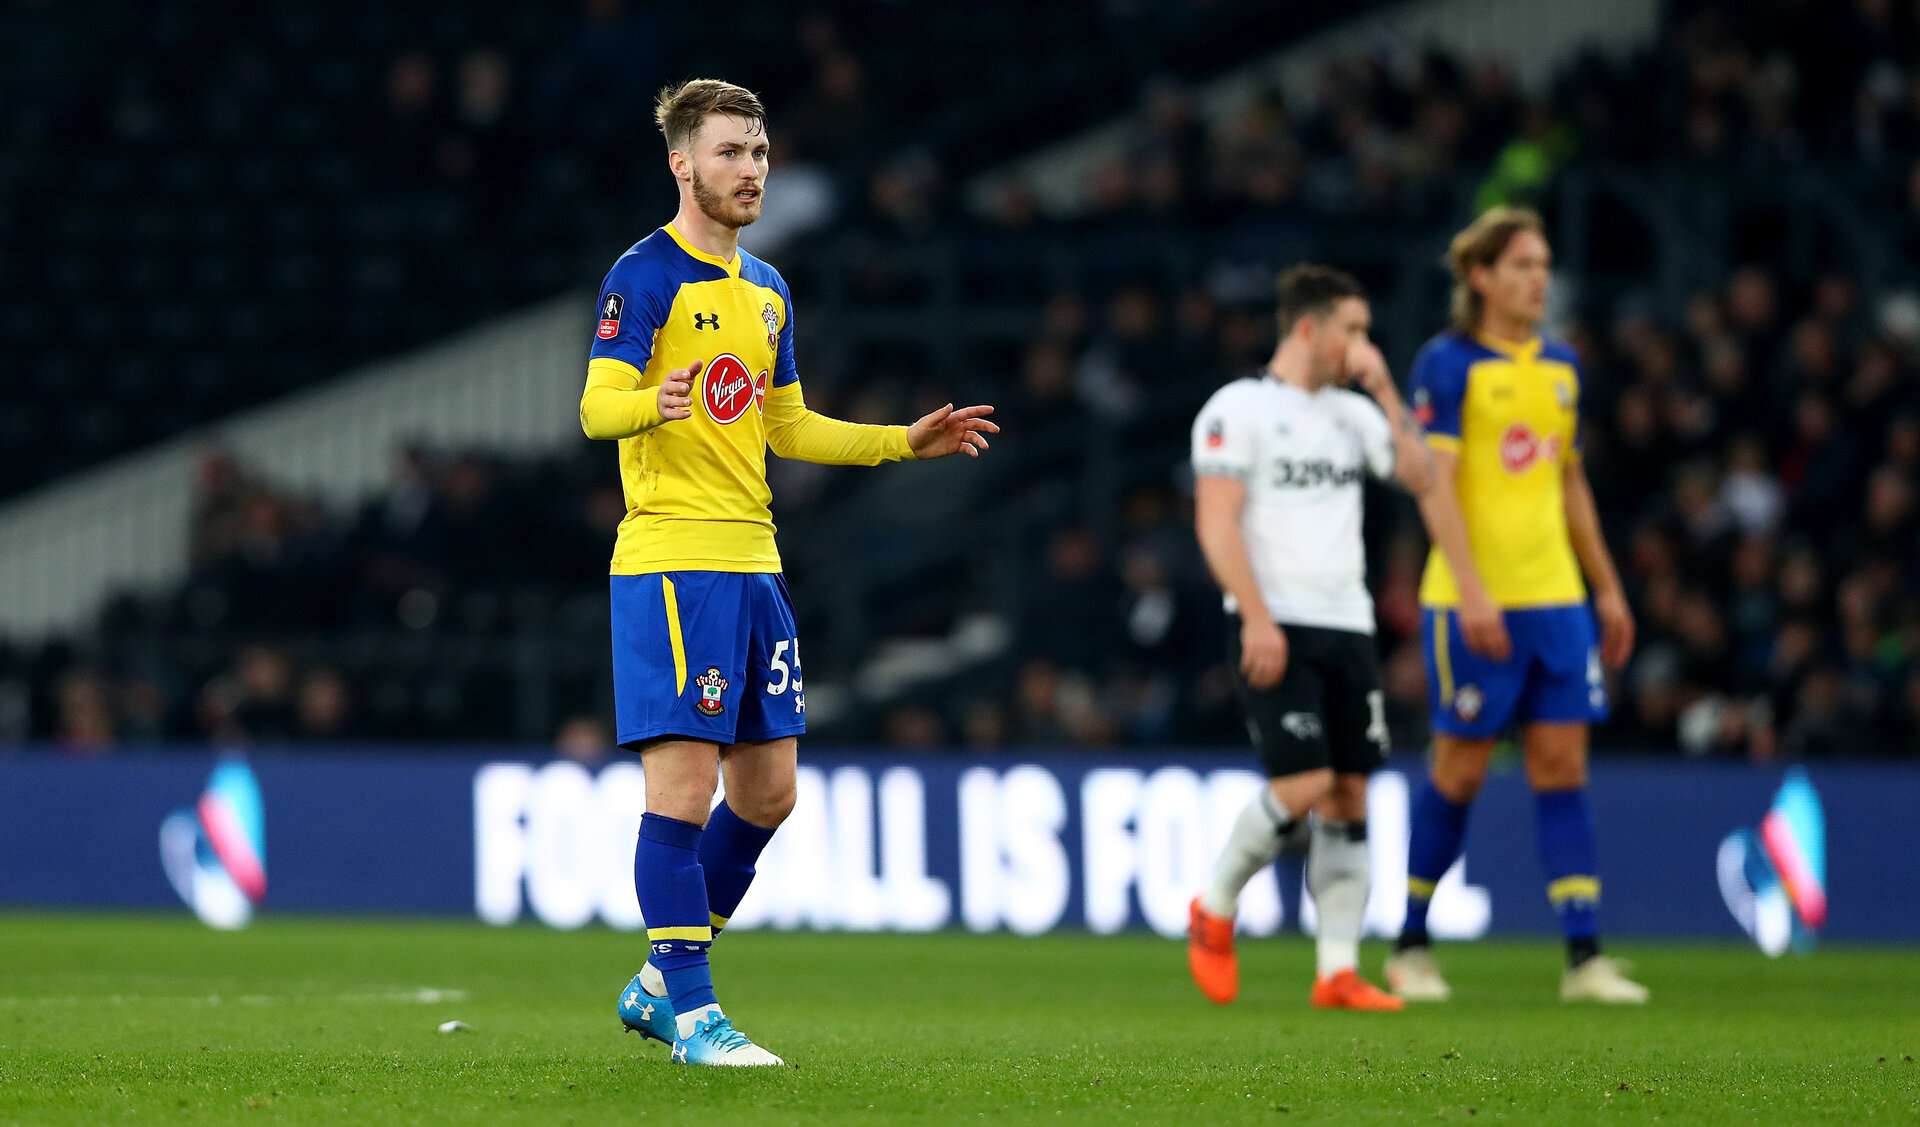 DERBY, ENGLAND - JANUARY 05: Callum Slattery of Southampton during the FA Cup Third Round match between Derby County and Southampton FC at Pride Park on January 05, 2019 in Derby, United Kingdom. (Photo by Matt Watson/Southampton FC via Getty Images)